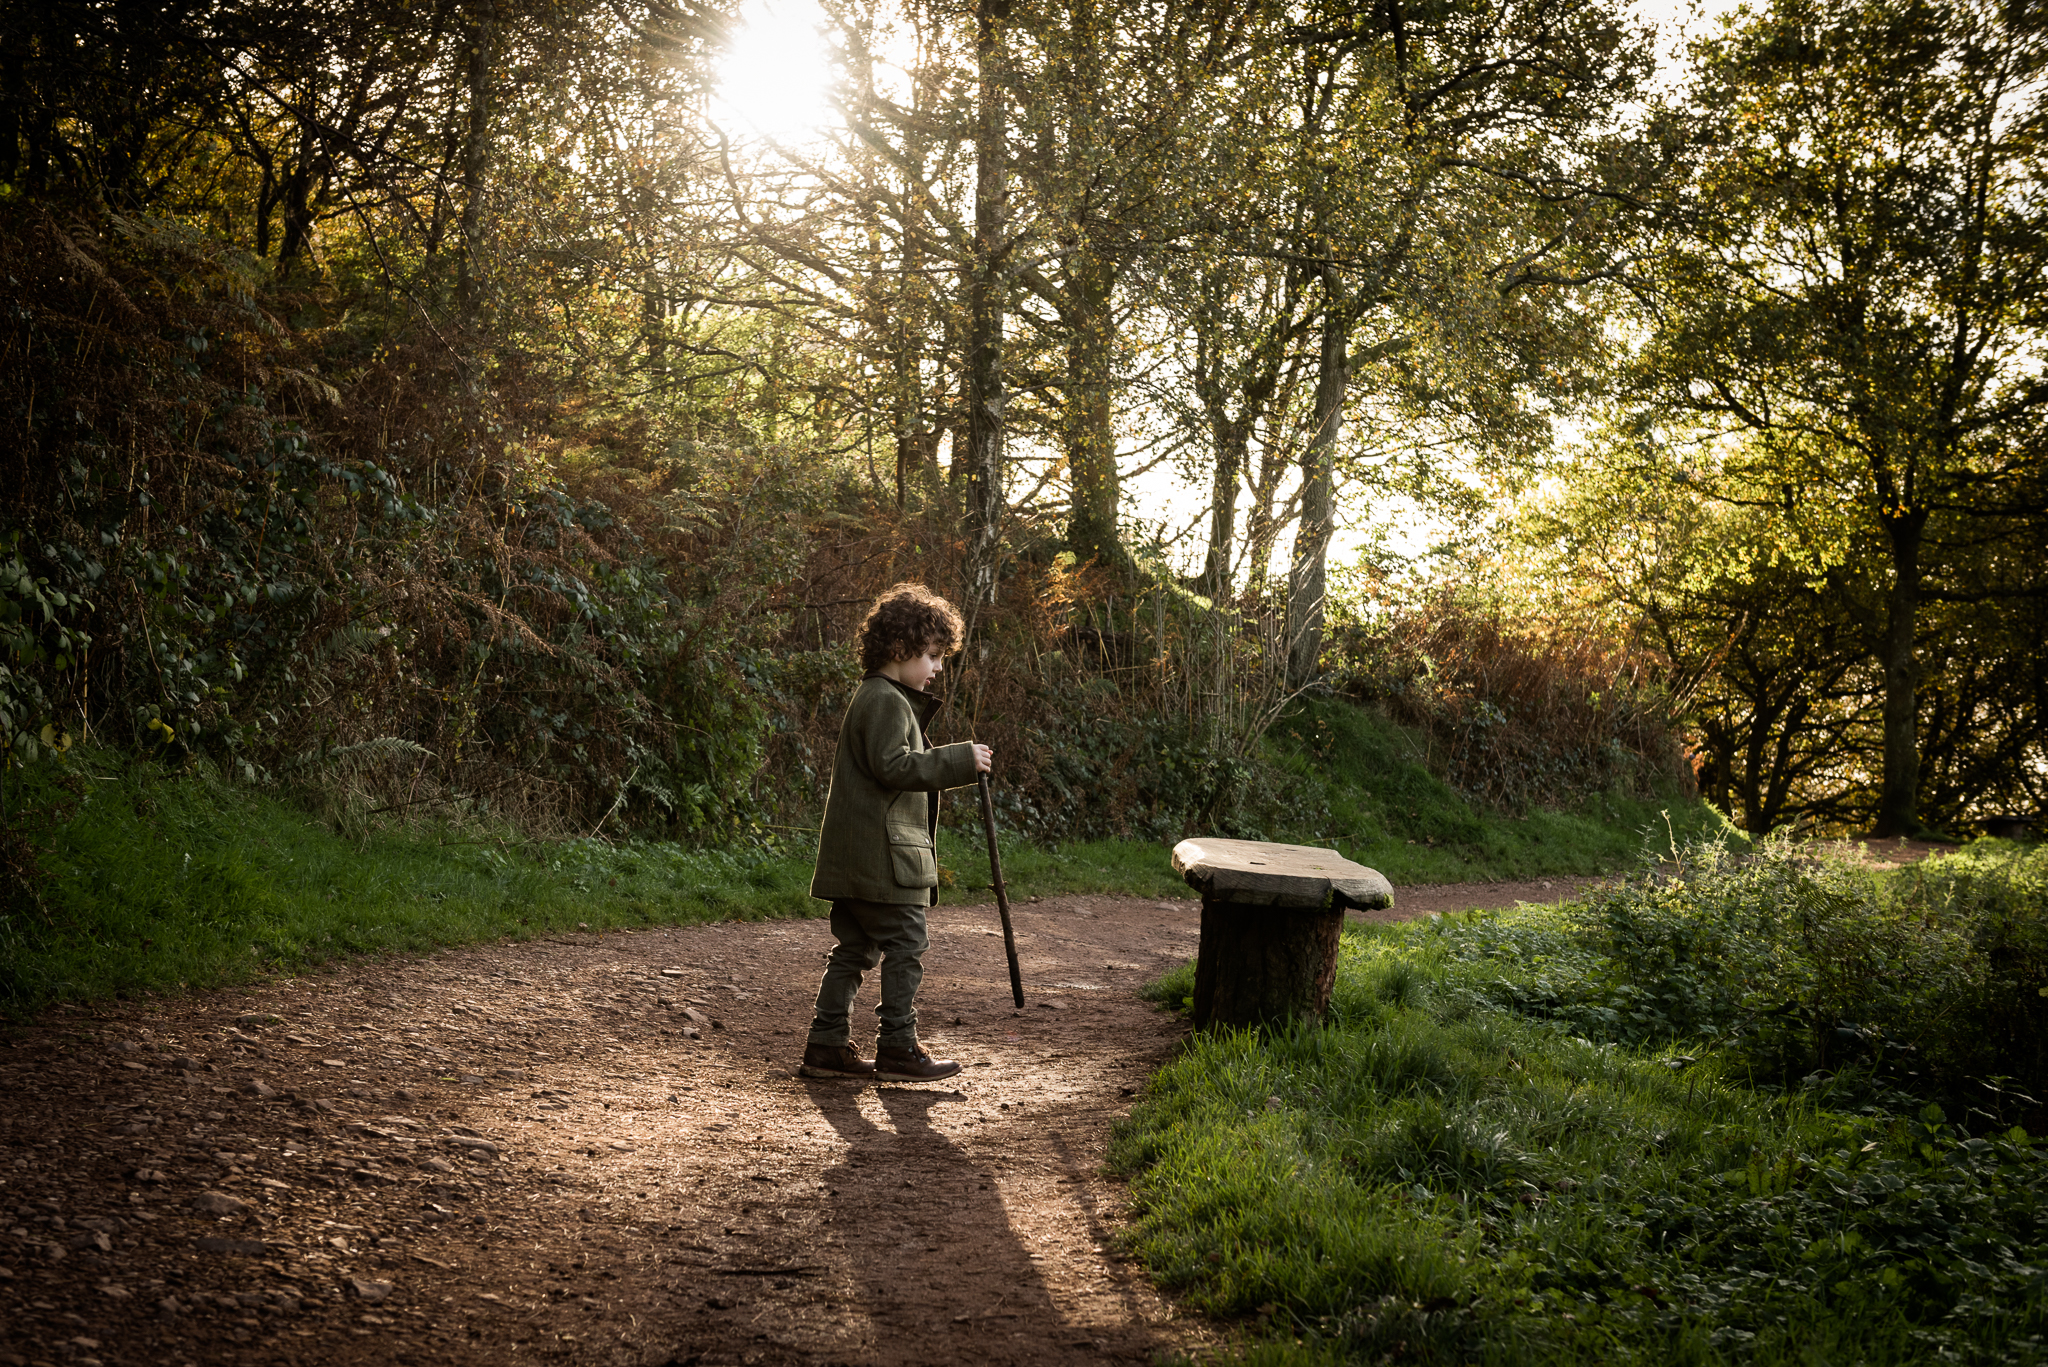 Autumn Documentary Lifestyle Family Photography at Clent Hills, Worcestershire Country Park countryside outdoors nature - Jenny Harper-11.jpg